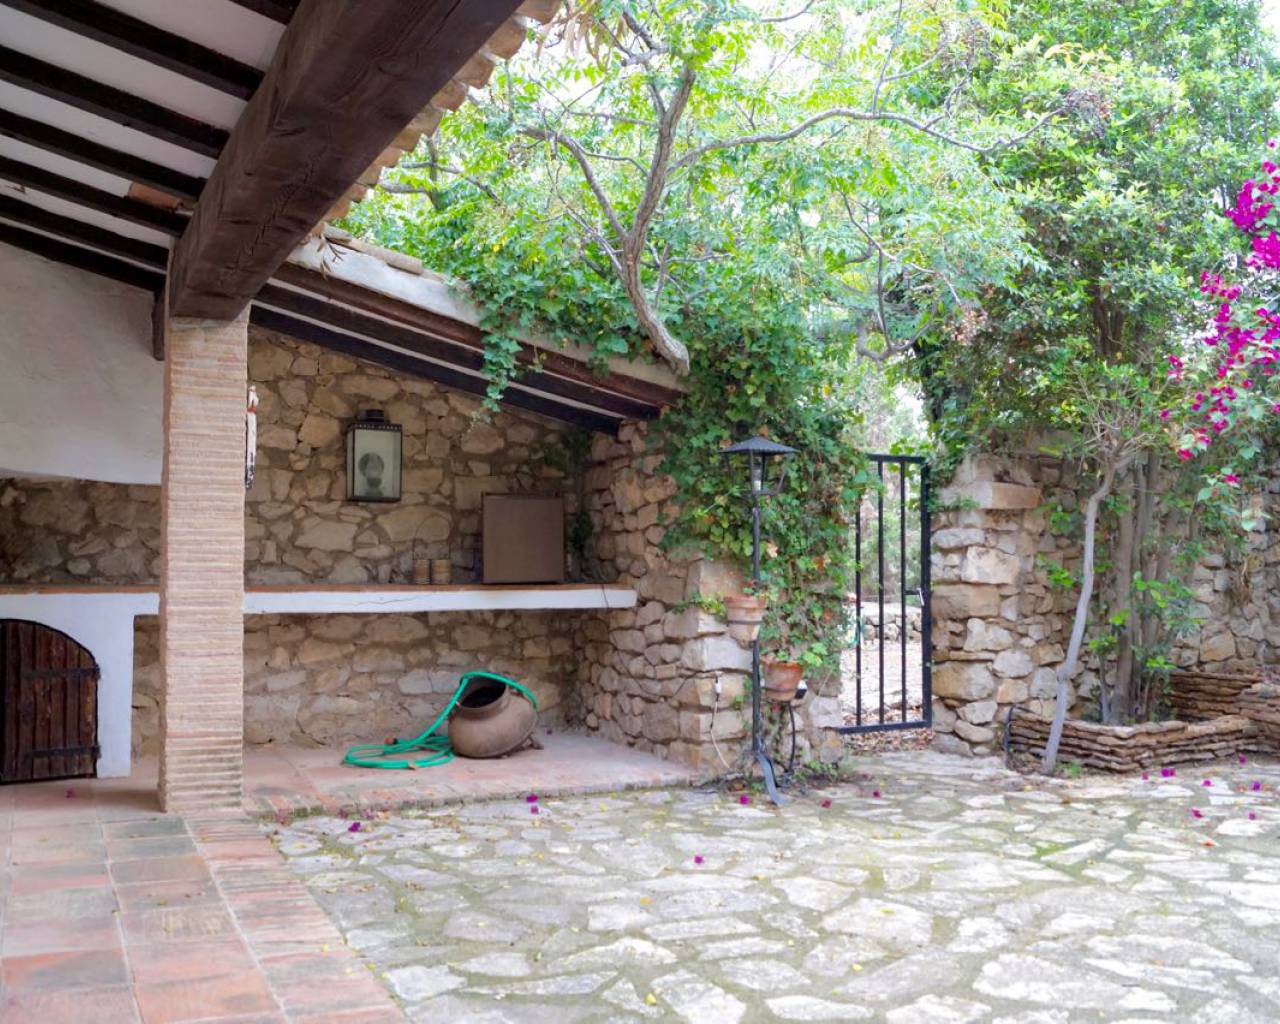 Sale - Country House / Finca - Benissa - Pedramala